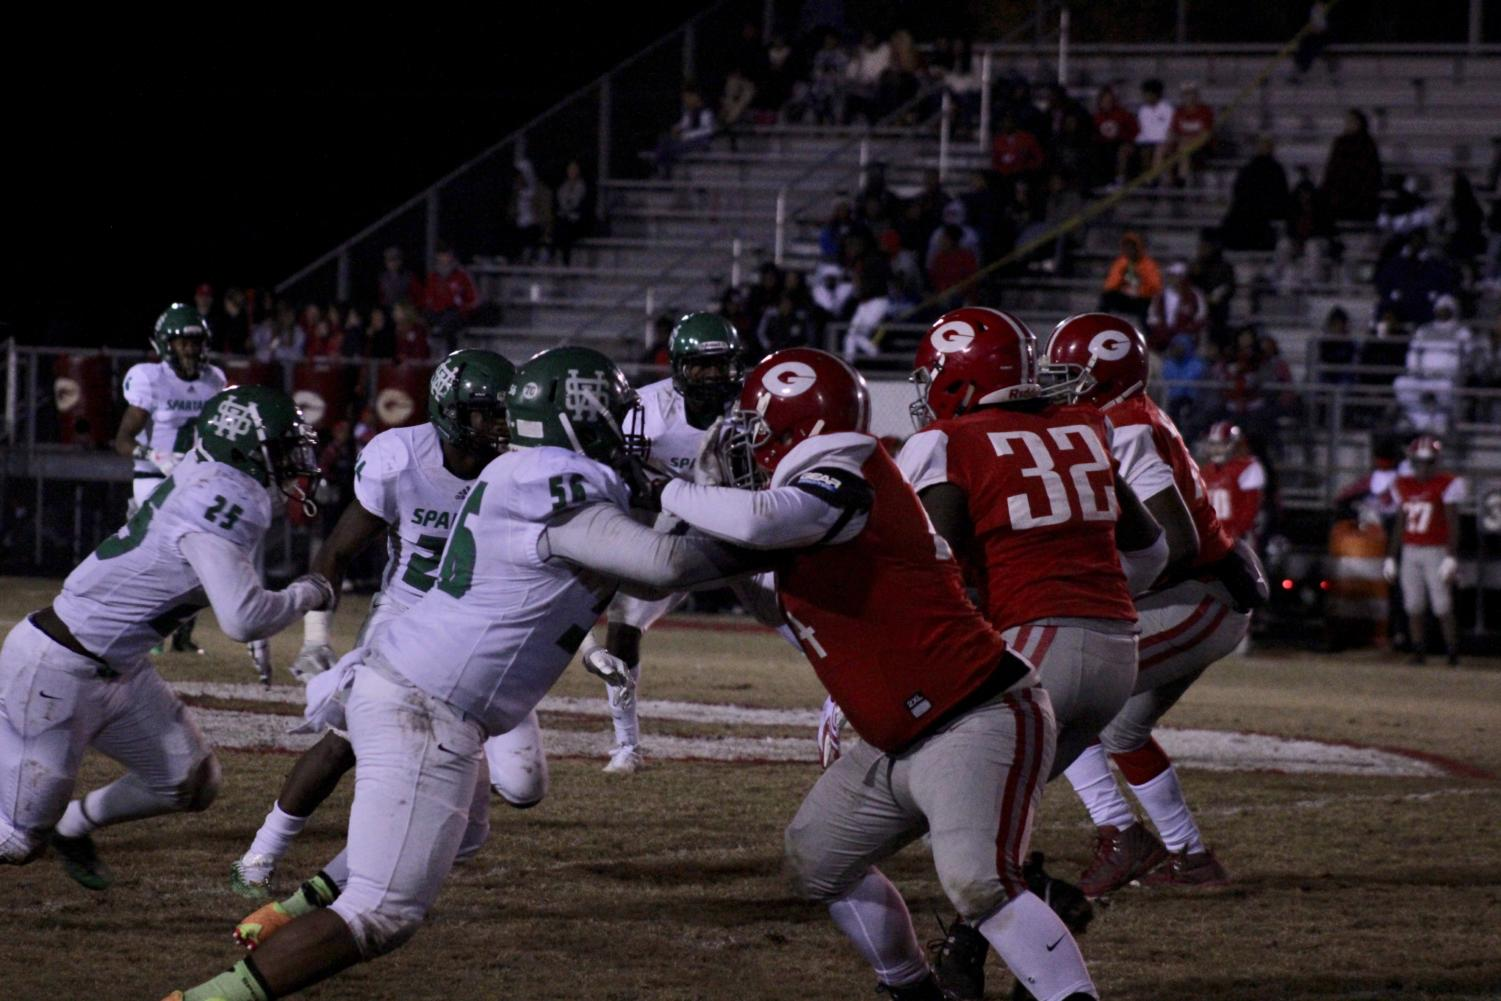 The White Station Football Team plays Germantown in an impact-heavy game.